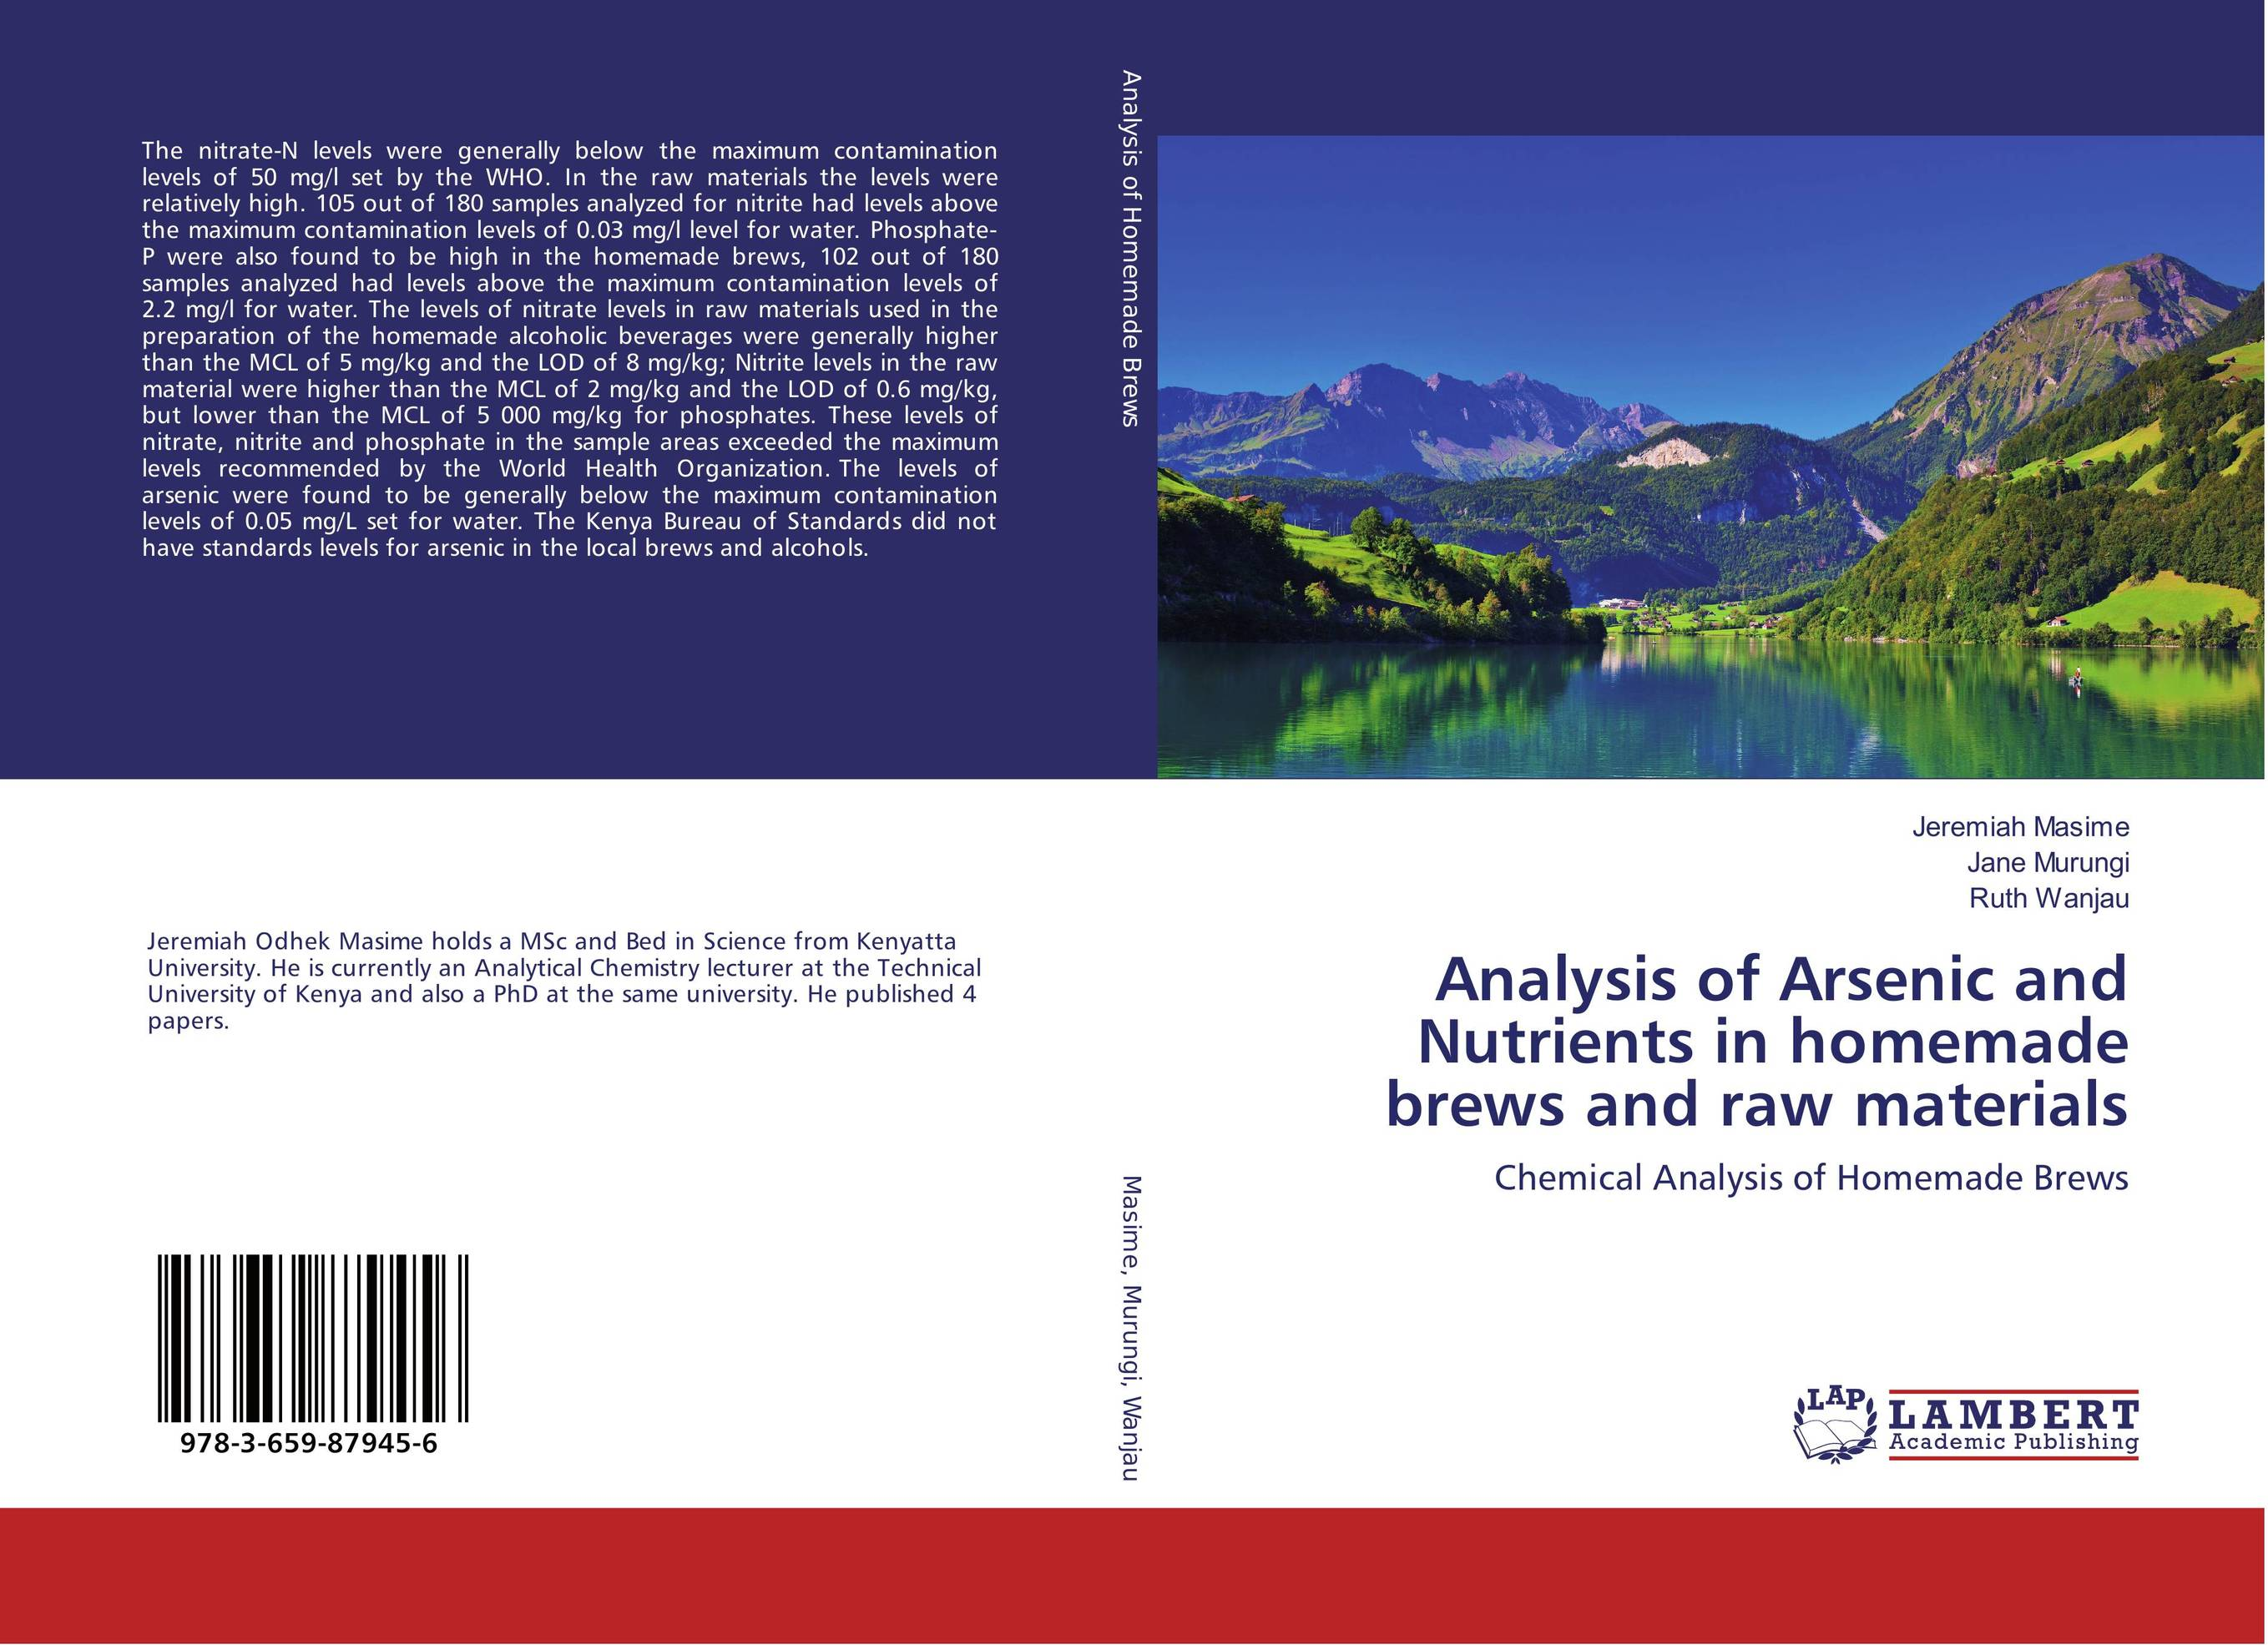 Analysis of Arsenic and Nutrients in homemade brews and raw materials found in brooklyn